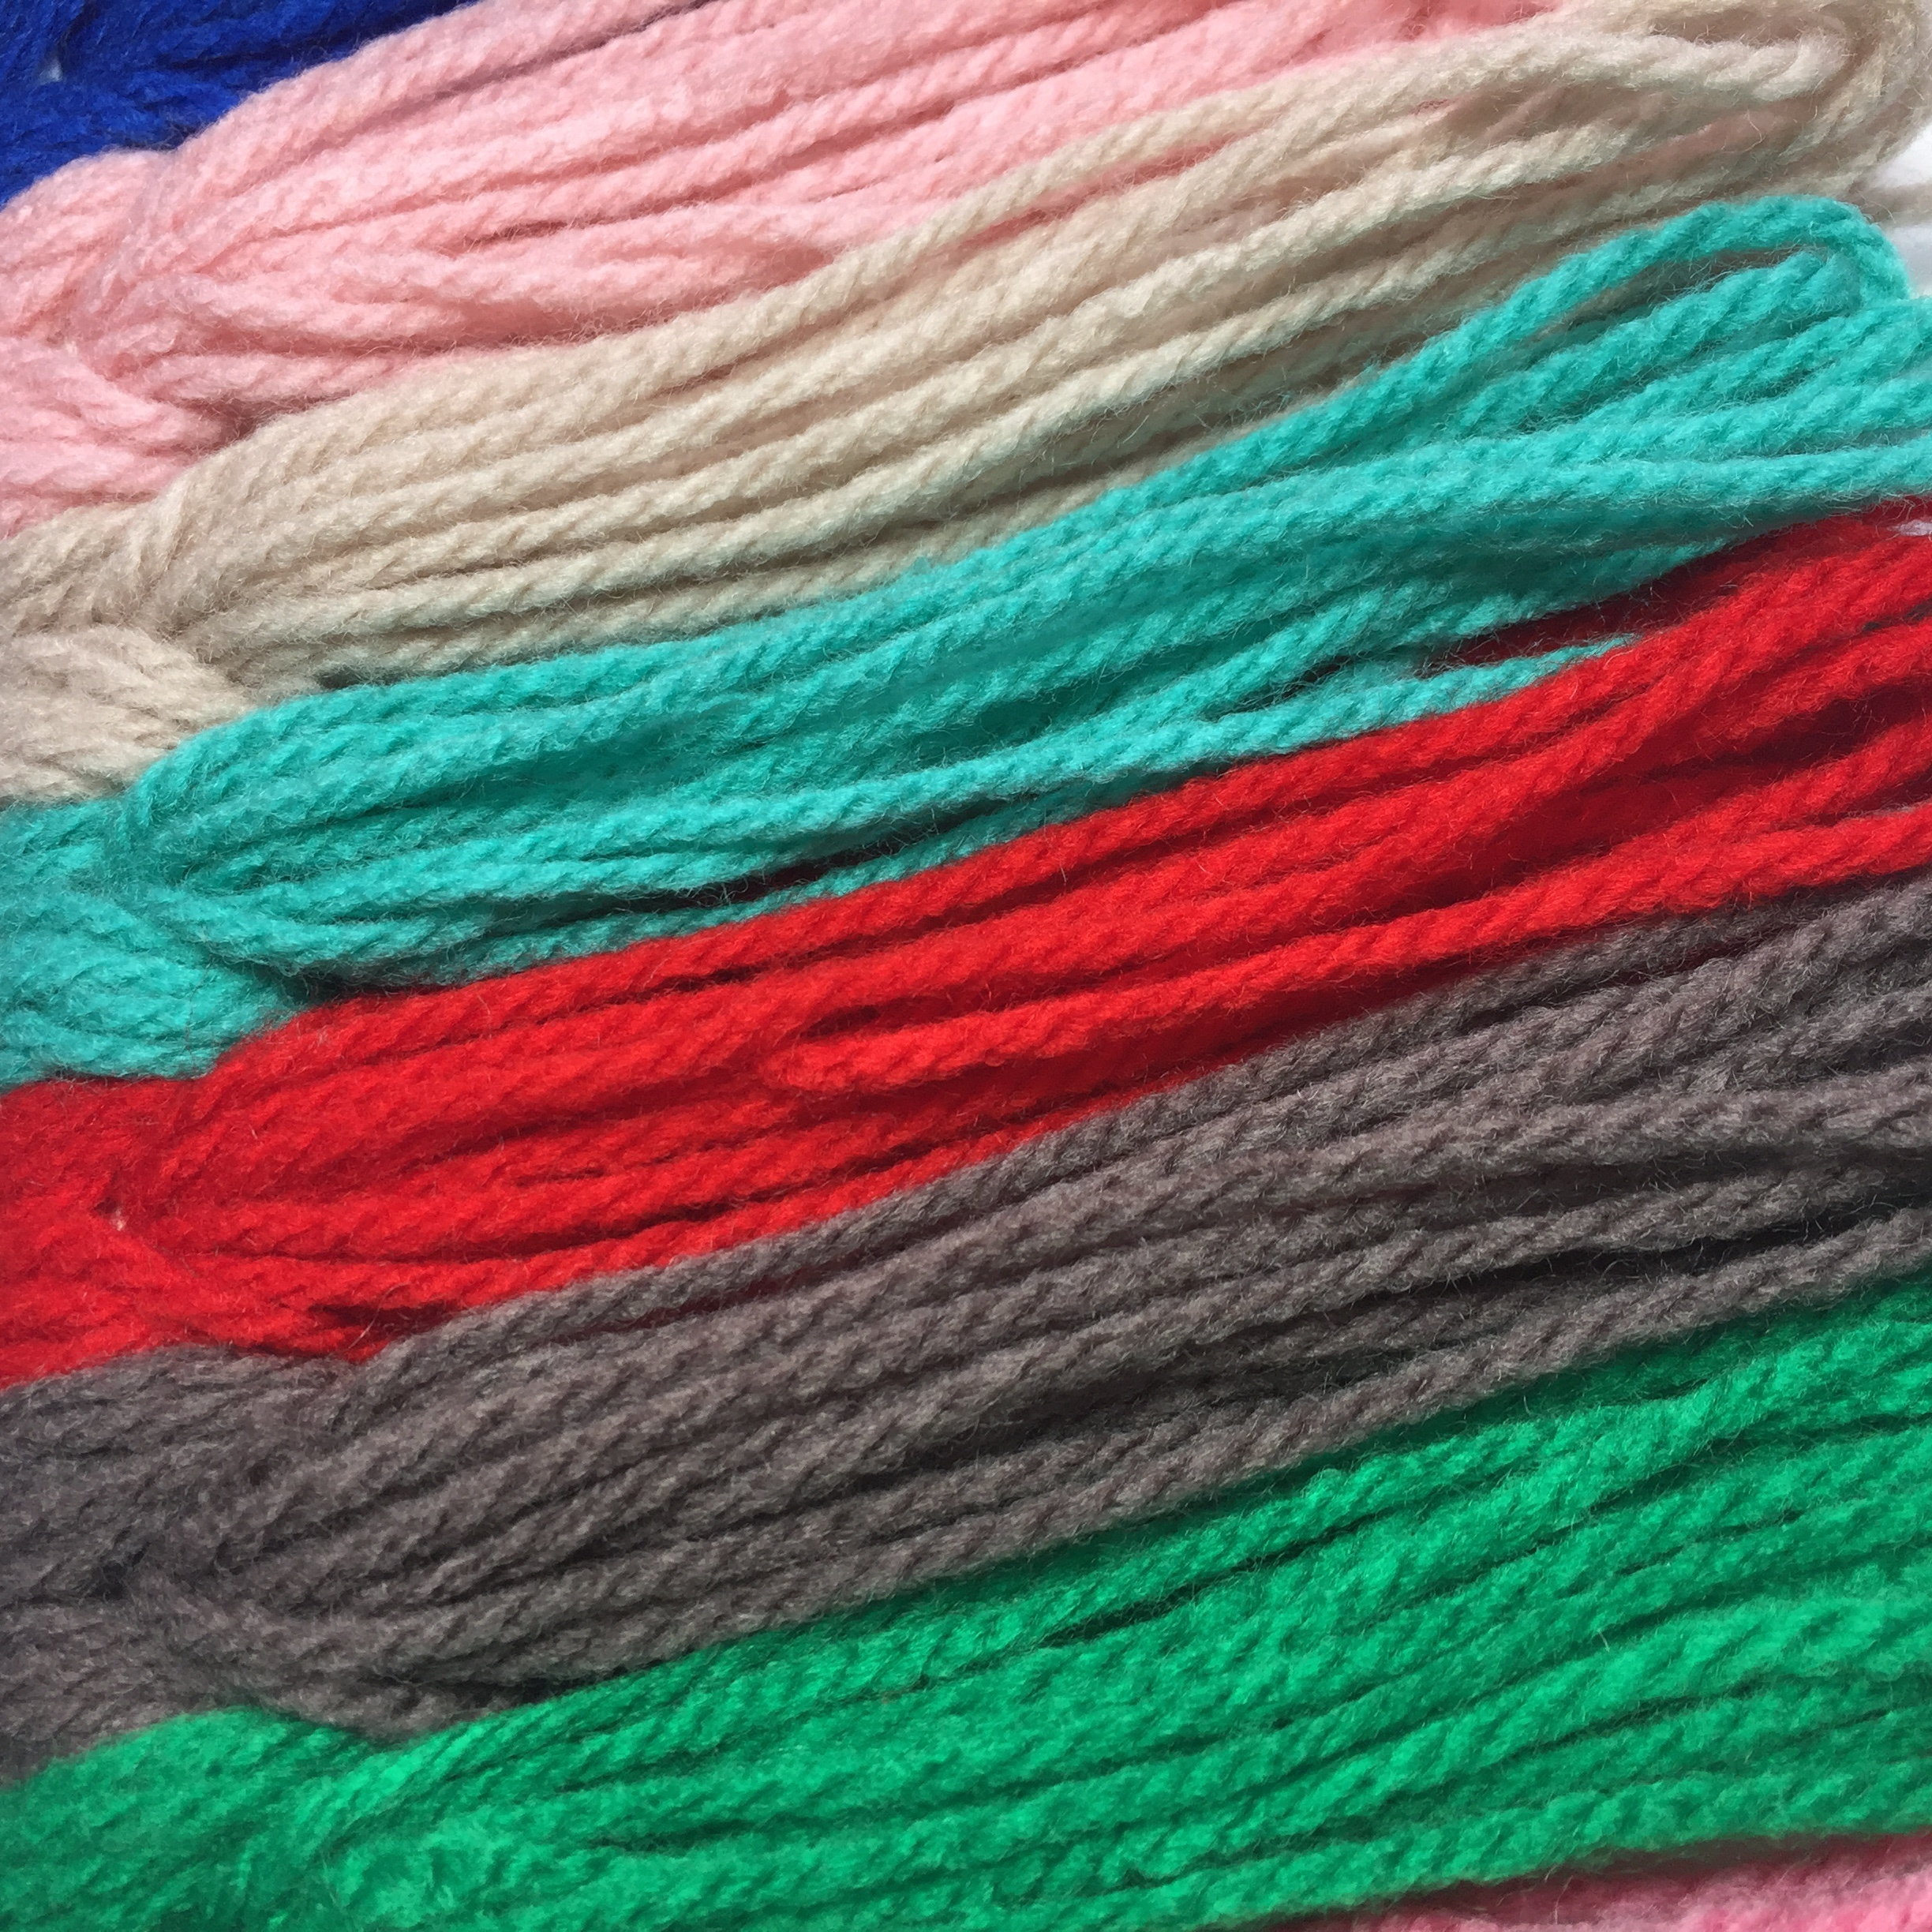 100%Acrylic Yarn, Handknitting Yarn, Cheap Price, Jd9737